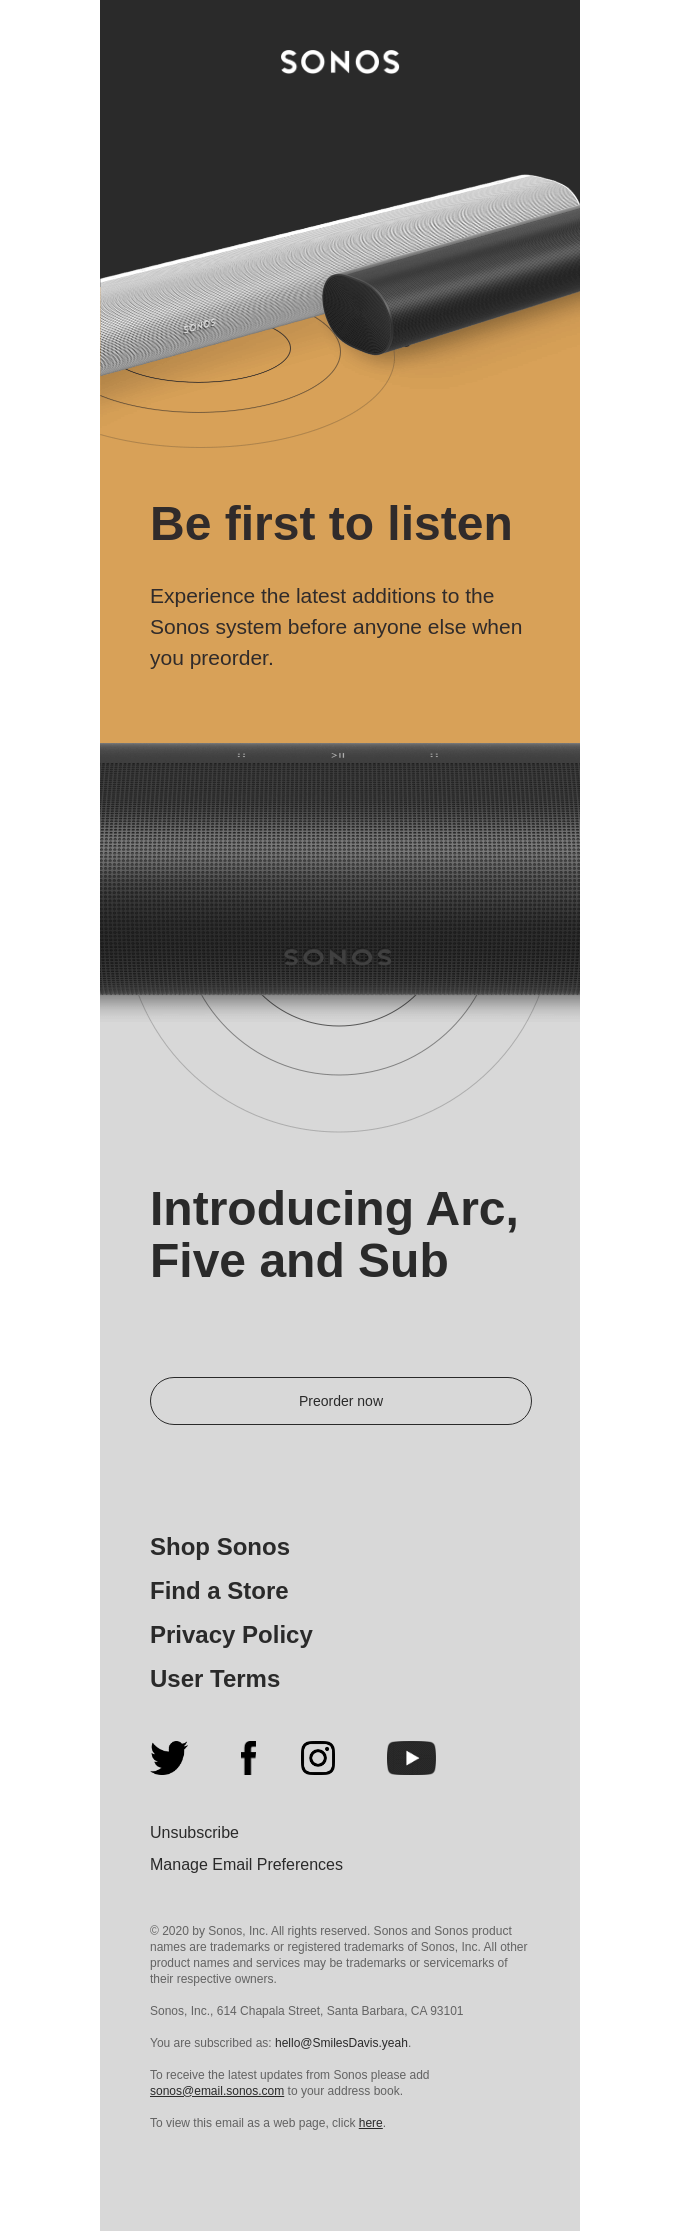 Meet Arc, Five and Sub